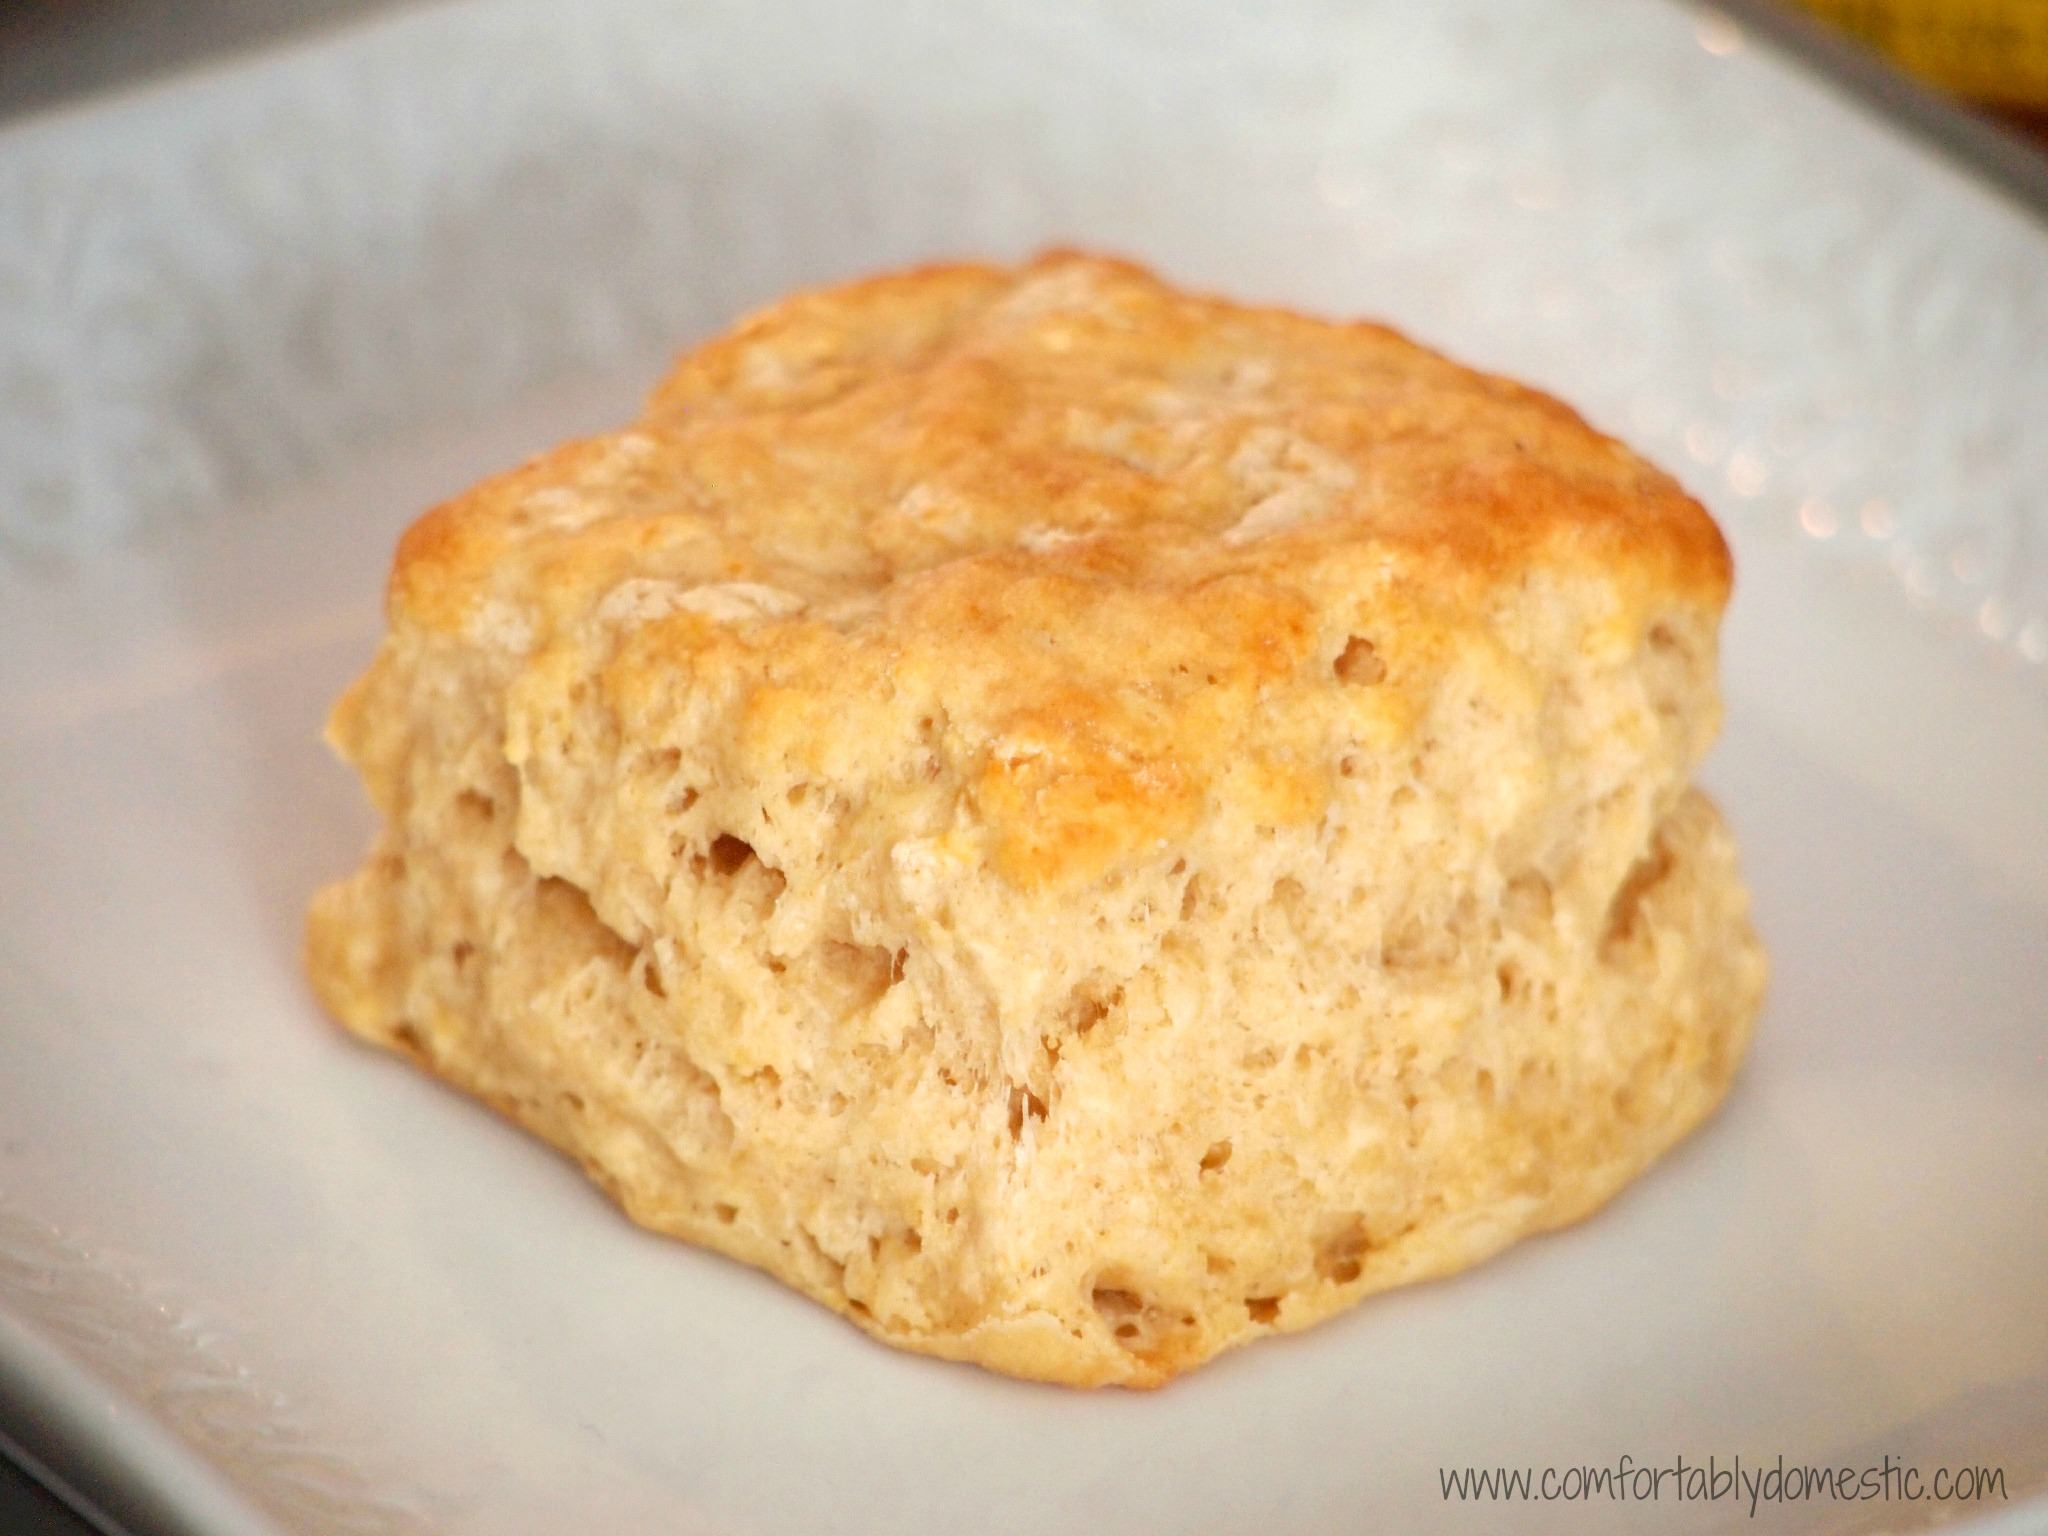 Whole Wheat Buttermilk Biscuits are flaky, buttery biscuits, filled with whole grain goodness. Perfect for breakfast sandwiches or with a meal. | ComfortablyDomestic.com